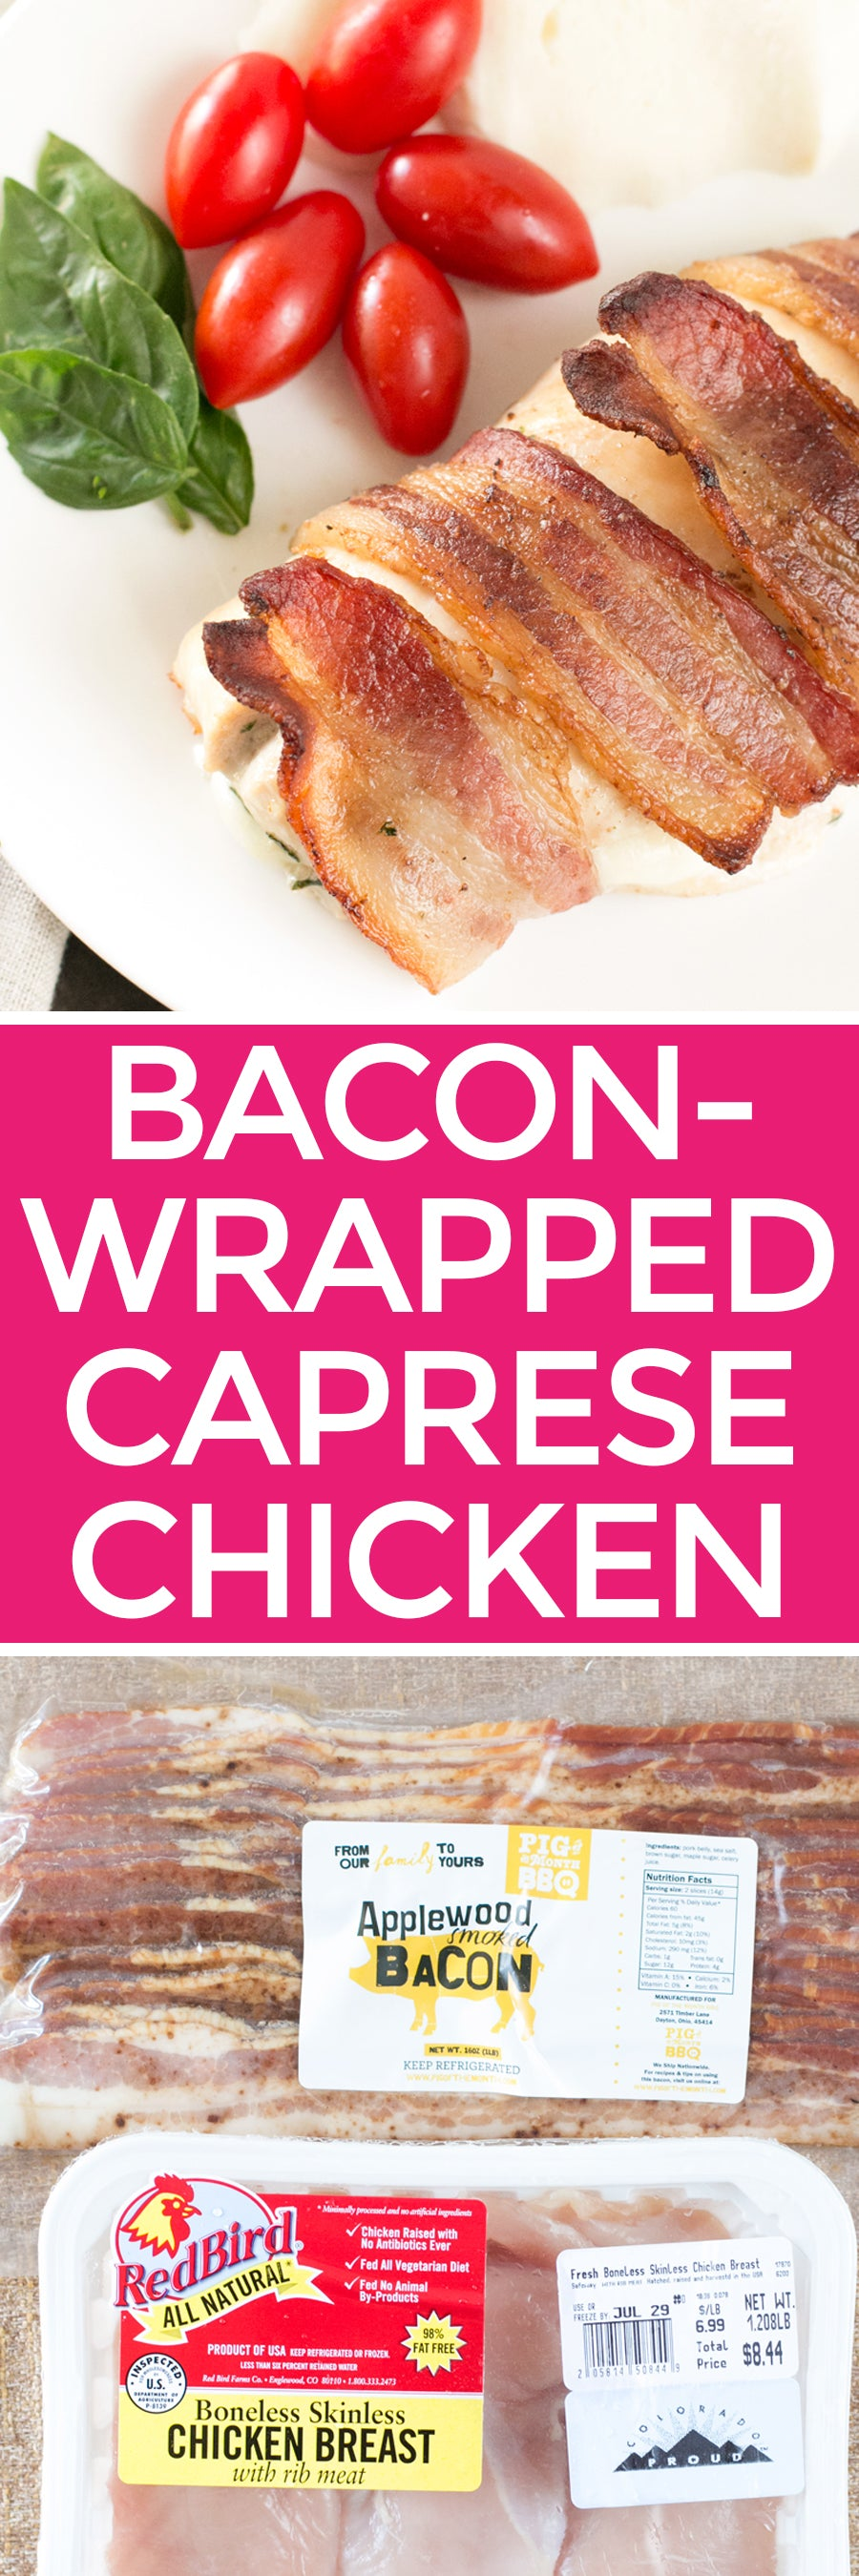 Bacon-Wrapped Caprese Chicken | pigofthemonth.com #bacon #dinner #healthy